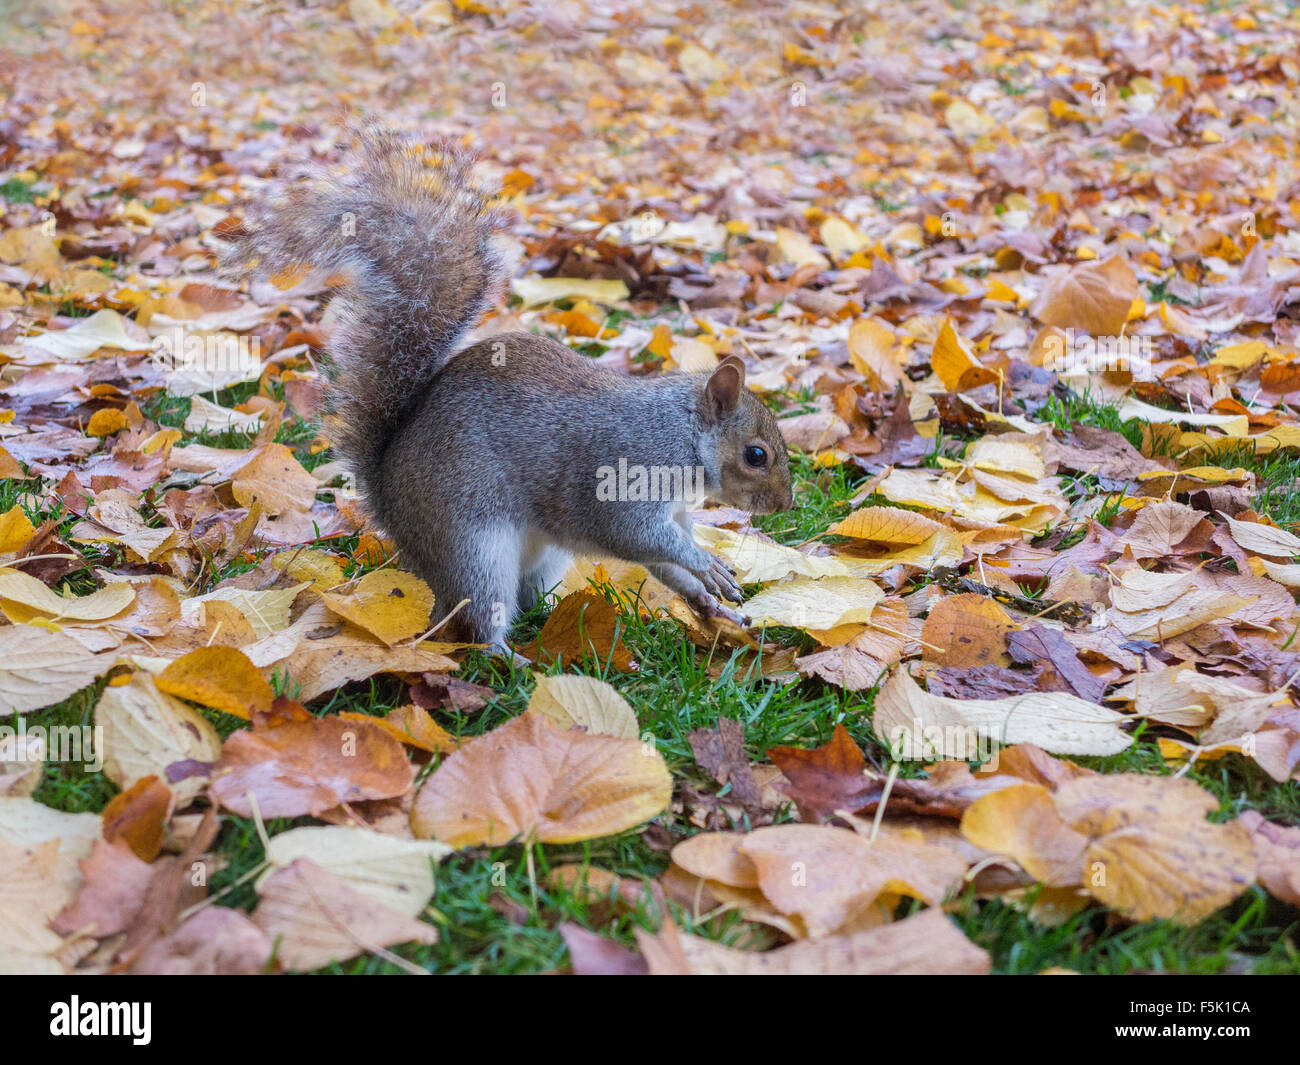 A squirrel looks inquisitive whilst burying nuts in the autumn leaves - Stock Image